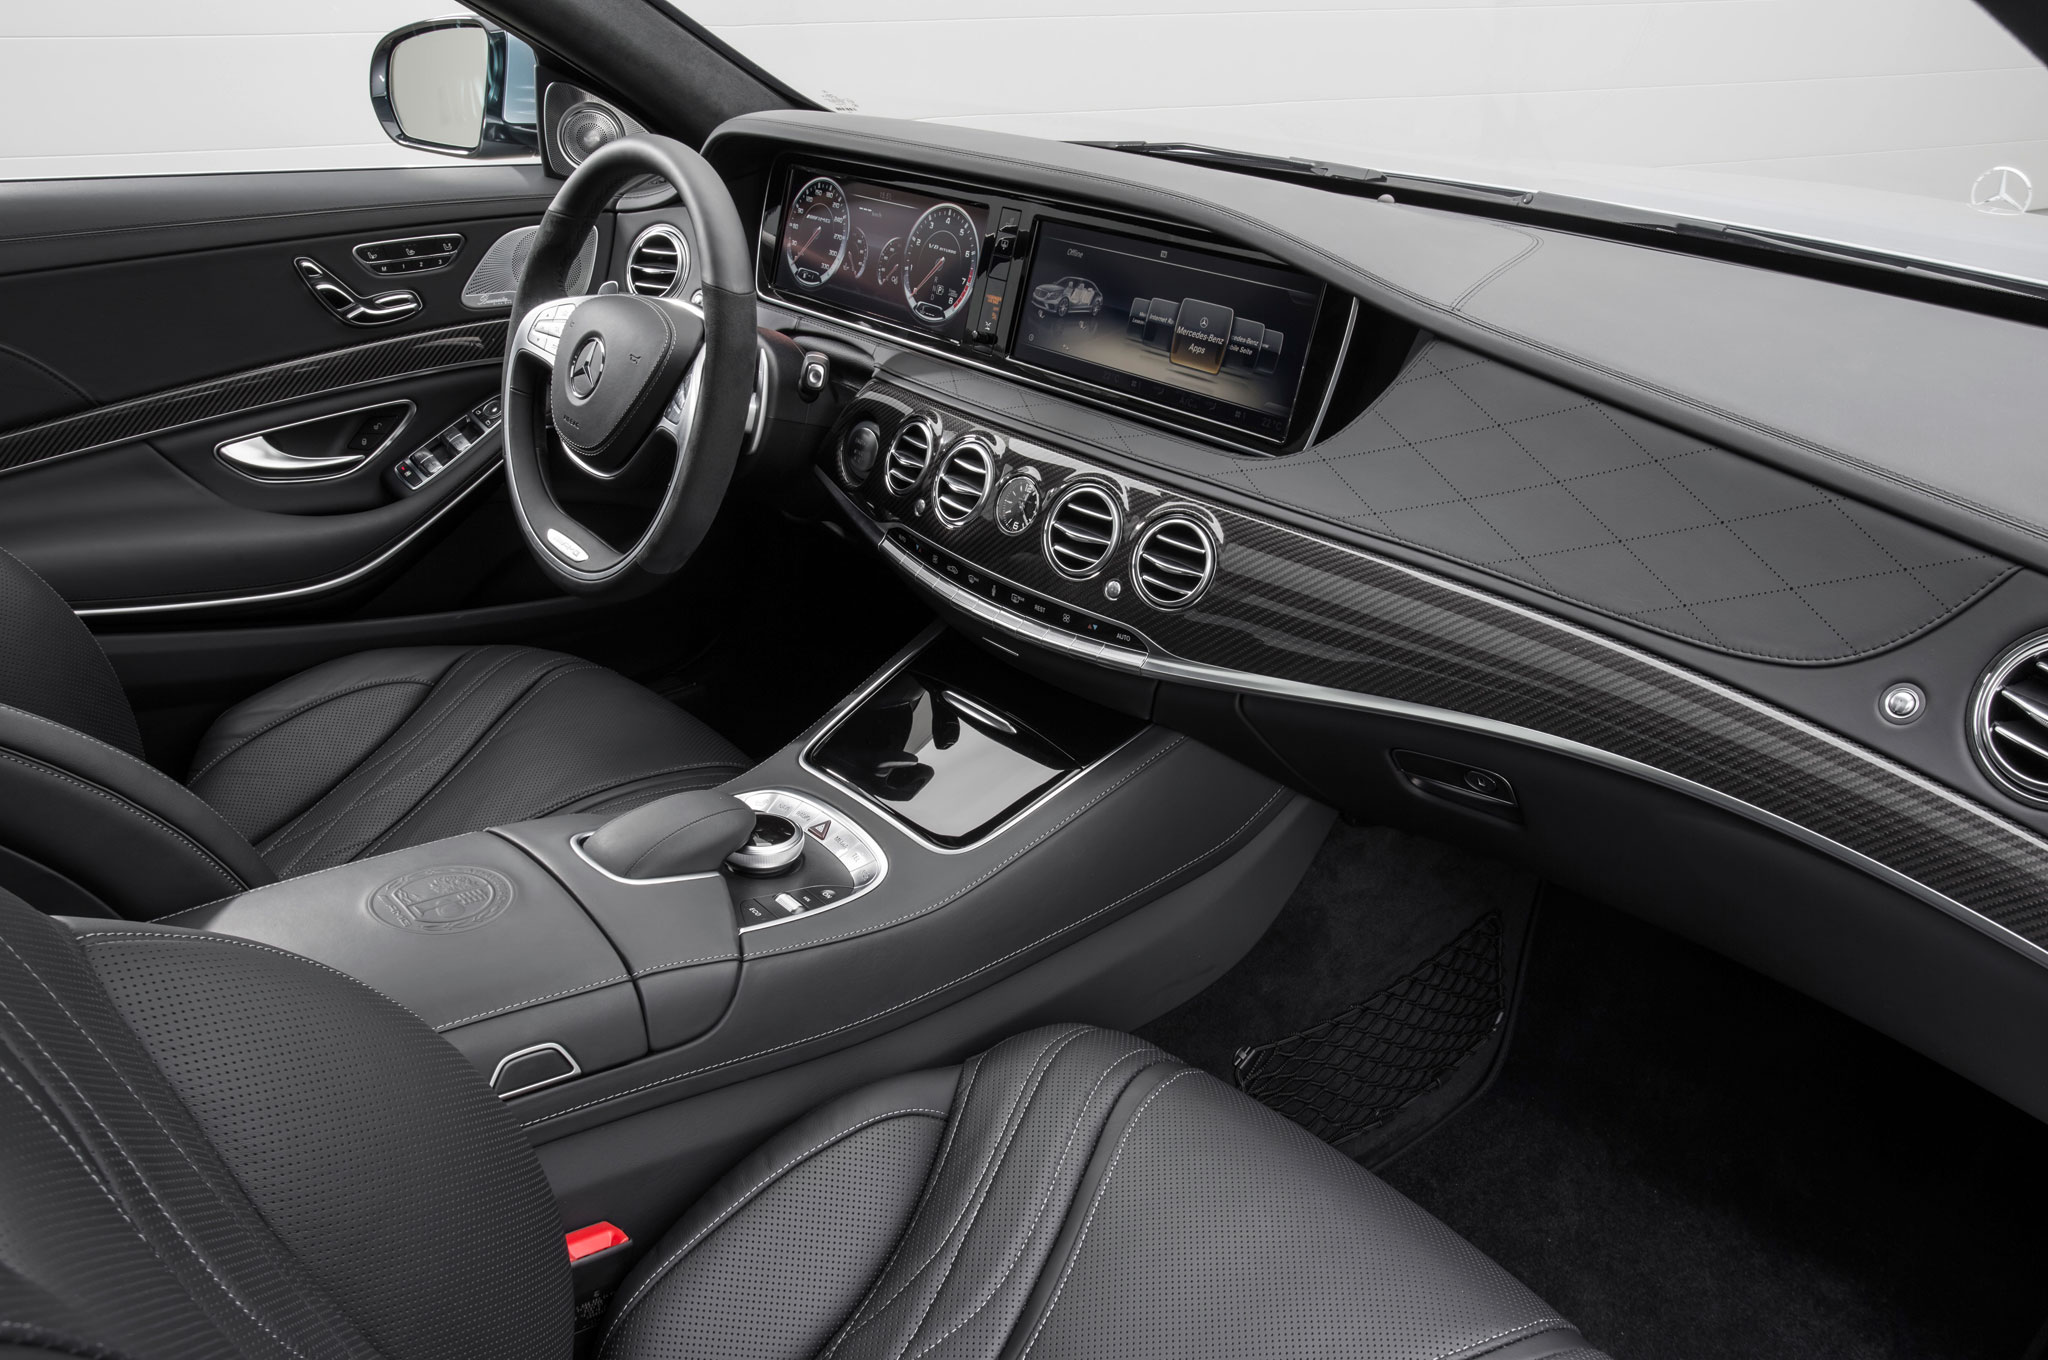 Benz cla class cla 250 edition 1 interior 1920x1080 59 of 183 - Absolute Power Corrupts Absolutely